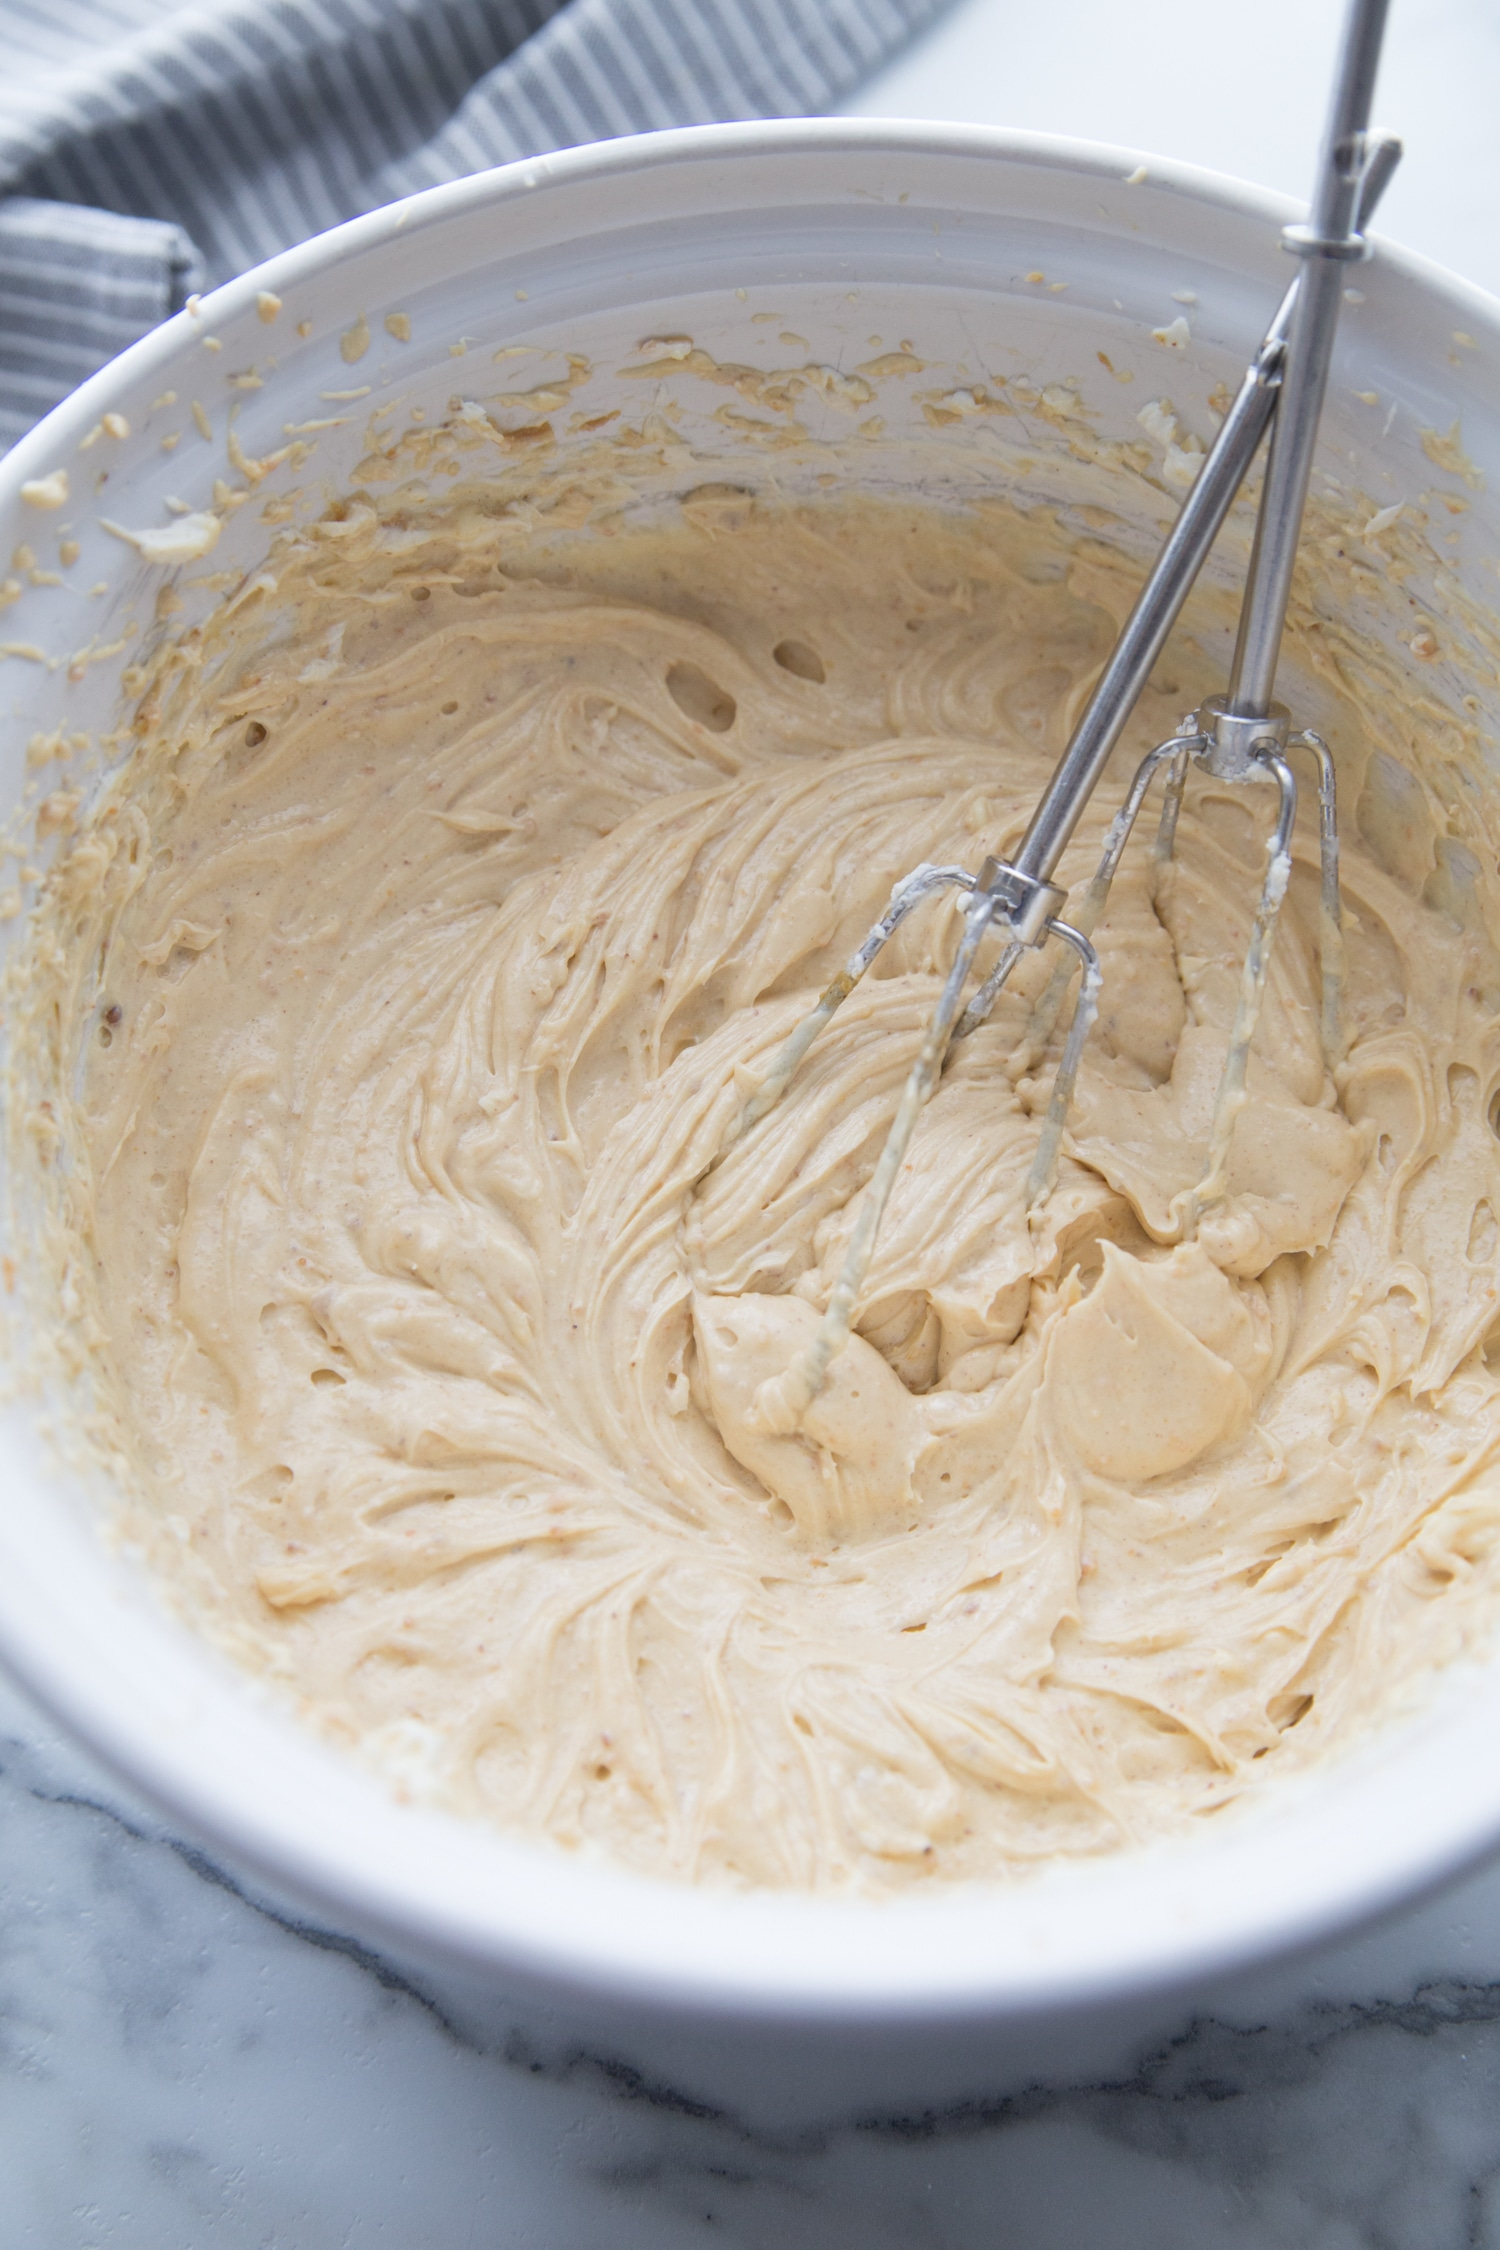 cheesecake batter mixed in a white bowl with two whisks